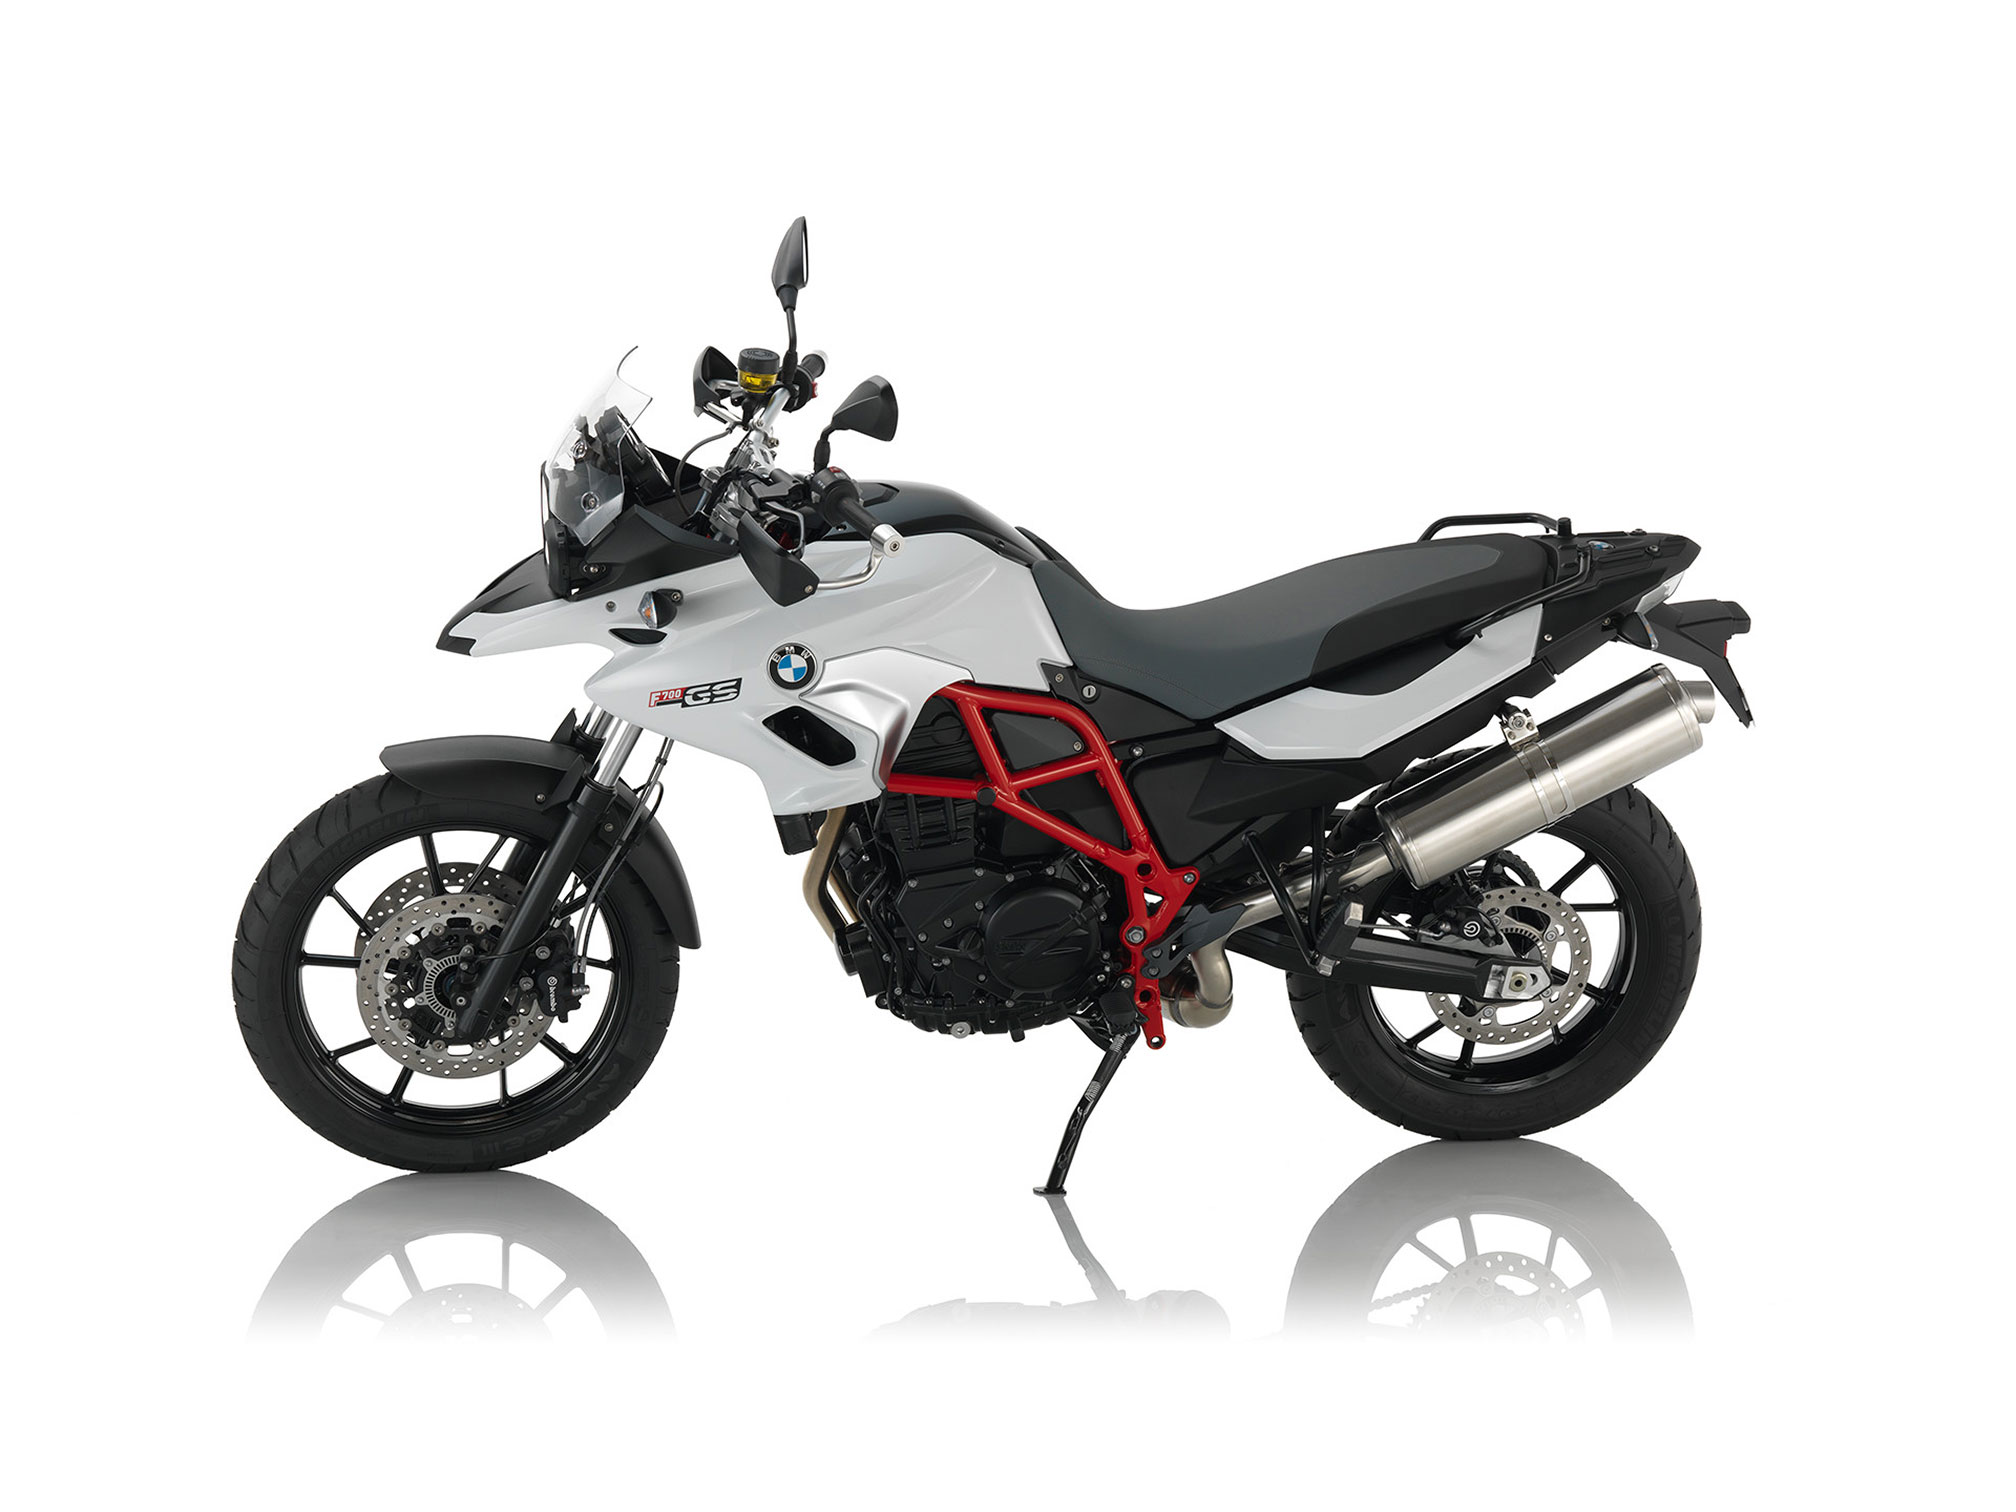 BMW F700 GS Motorcycle and scooter rentals in Bologna (Italy)